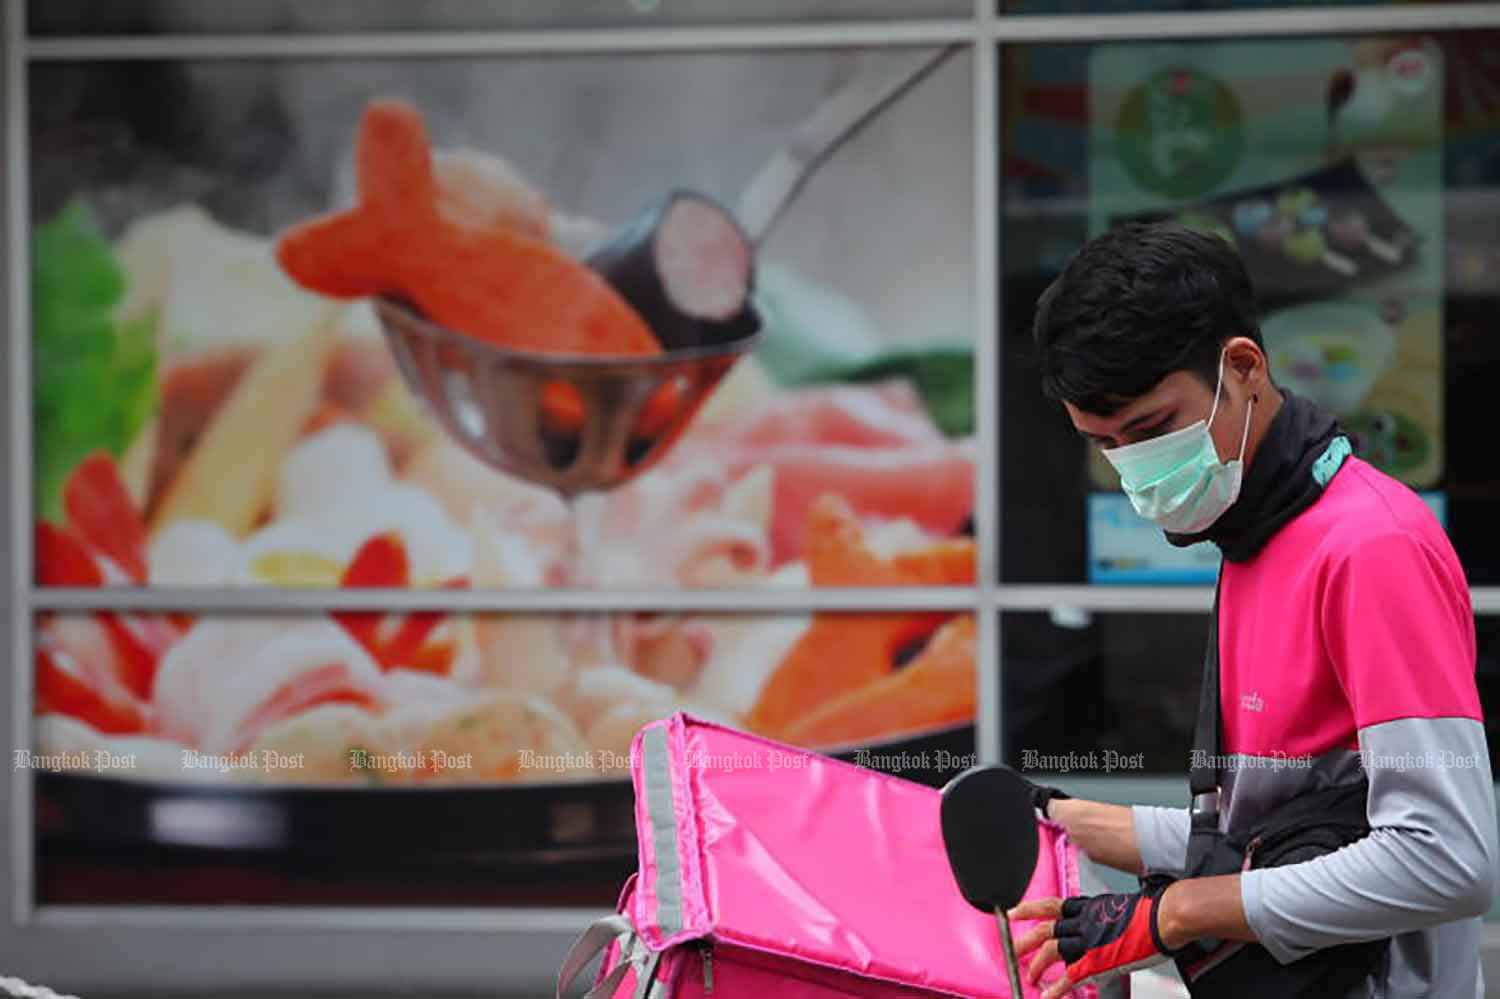 A delivery man stands by near an eatery at a shopping centre in Lat Phrao area of Bangkok last month. (Photo: Apichart Jinakul)